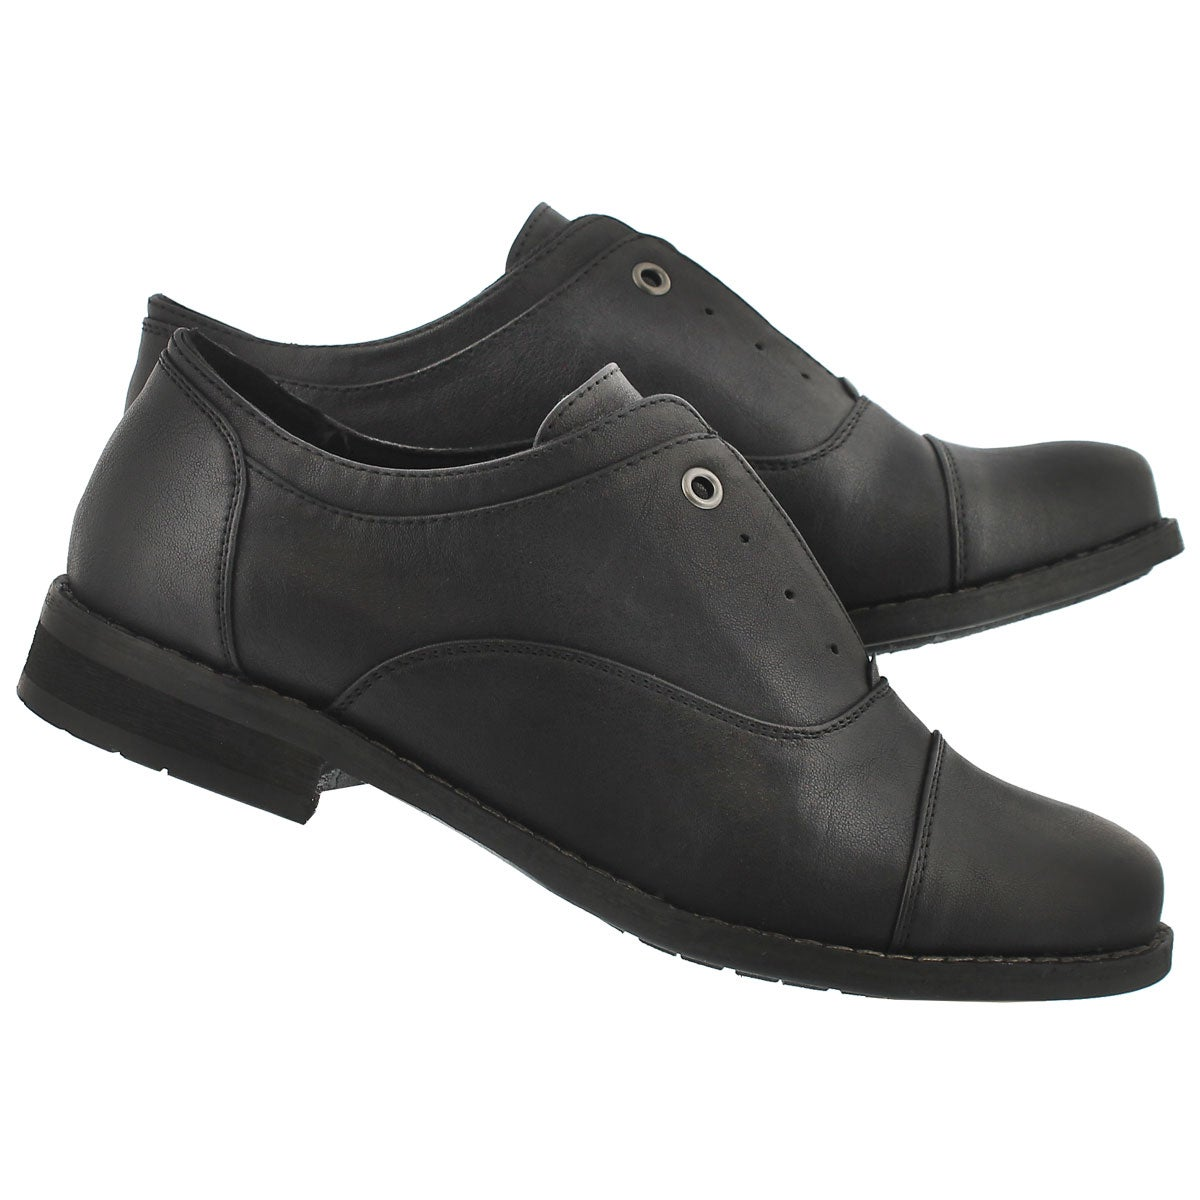 Lds Benicia blk laceless oxford